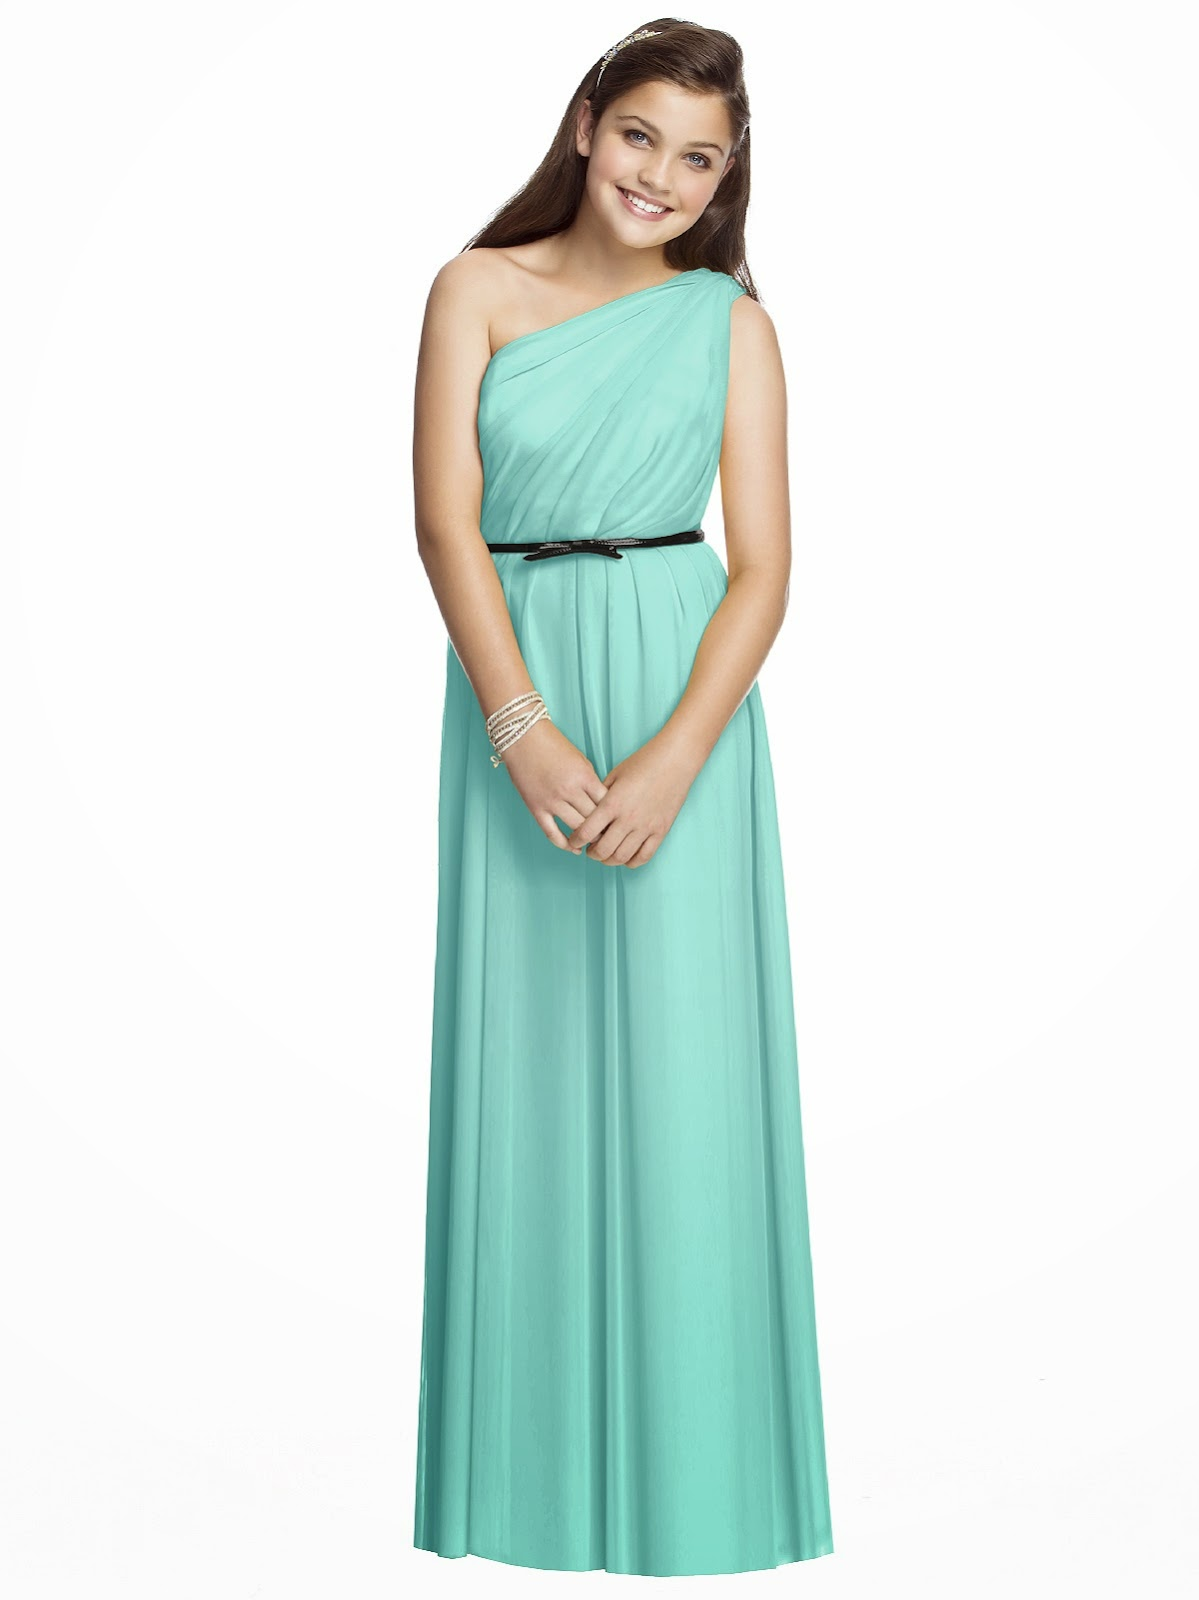 Macy's Junior Bridesmaid Dresses | Wedding and bridal